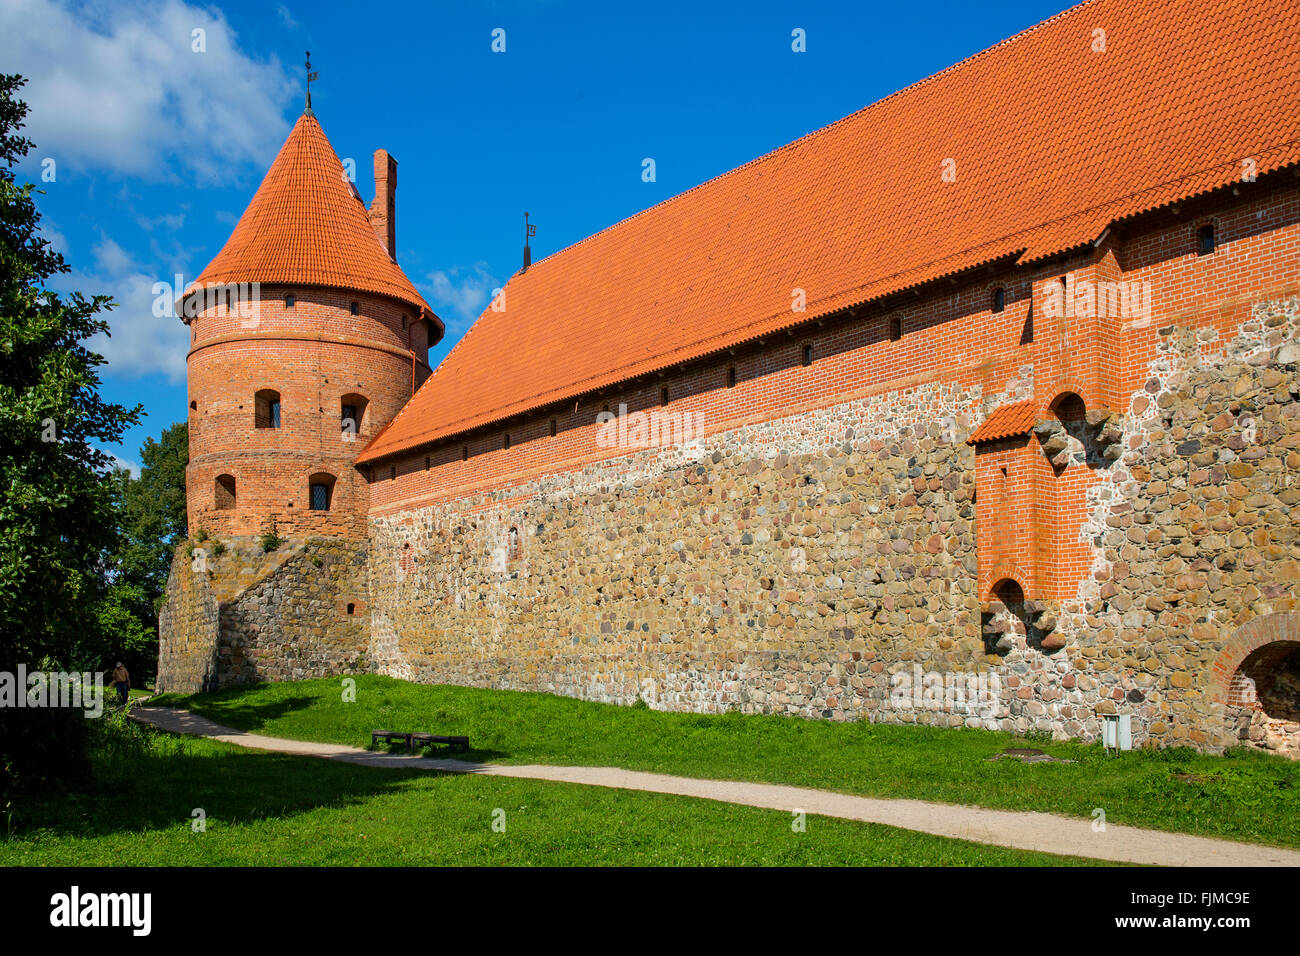 geography / travel, Lithuania, Trakai, Trakai Castle, Additional-Rights-Clearance-Info-Not-Available - Stock Image